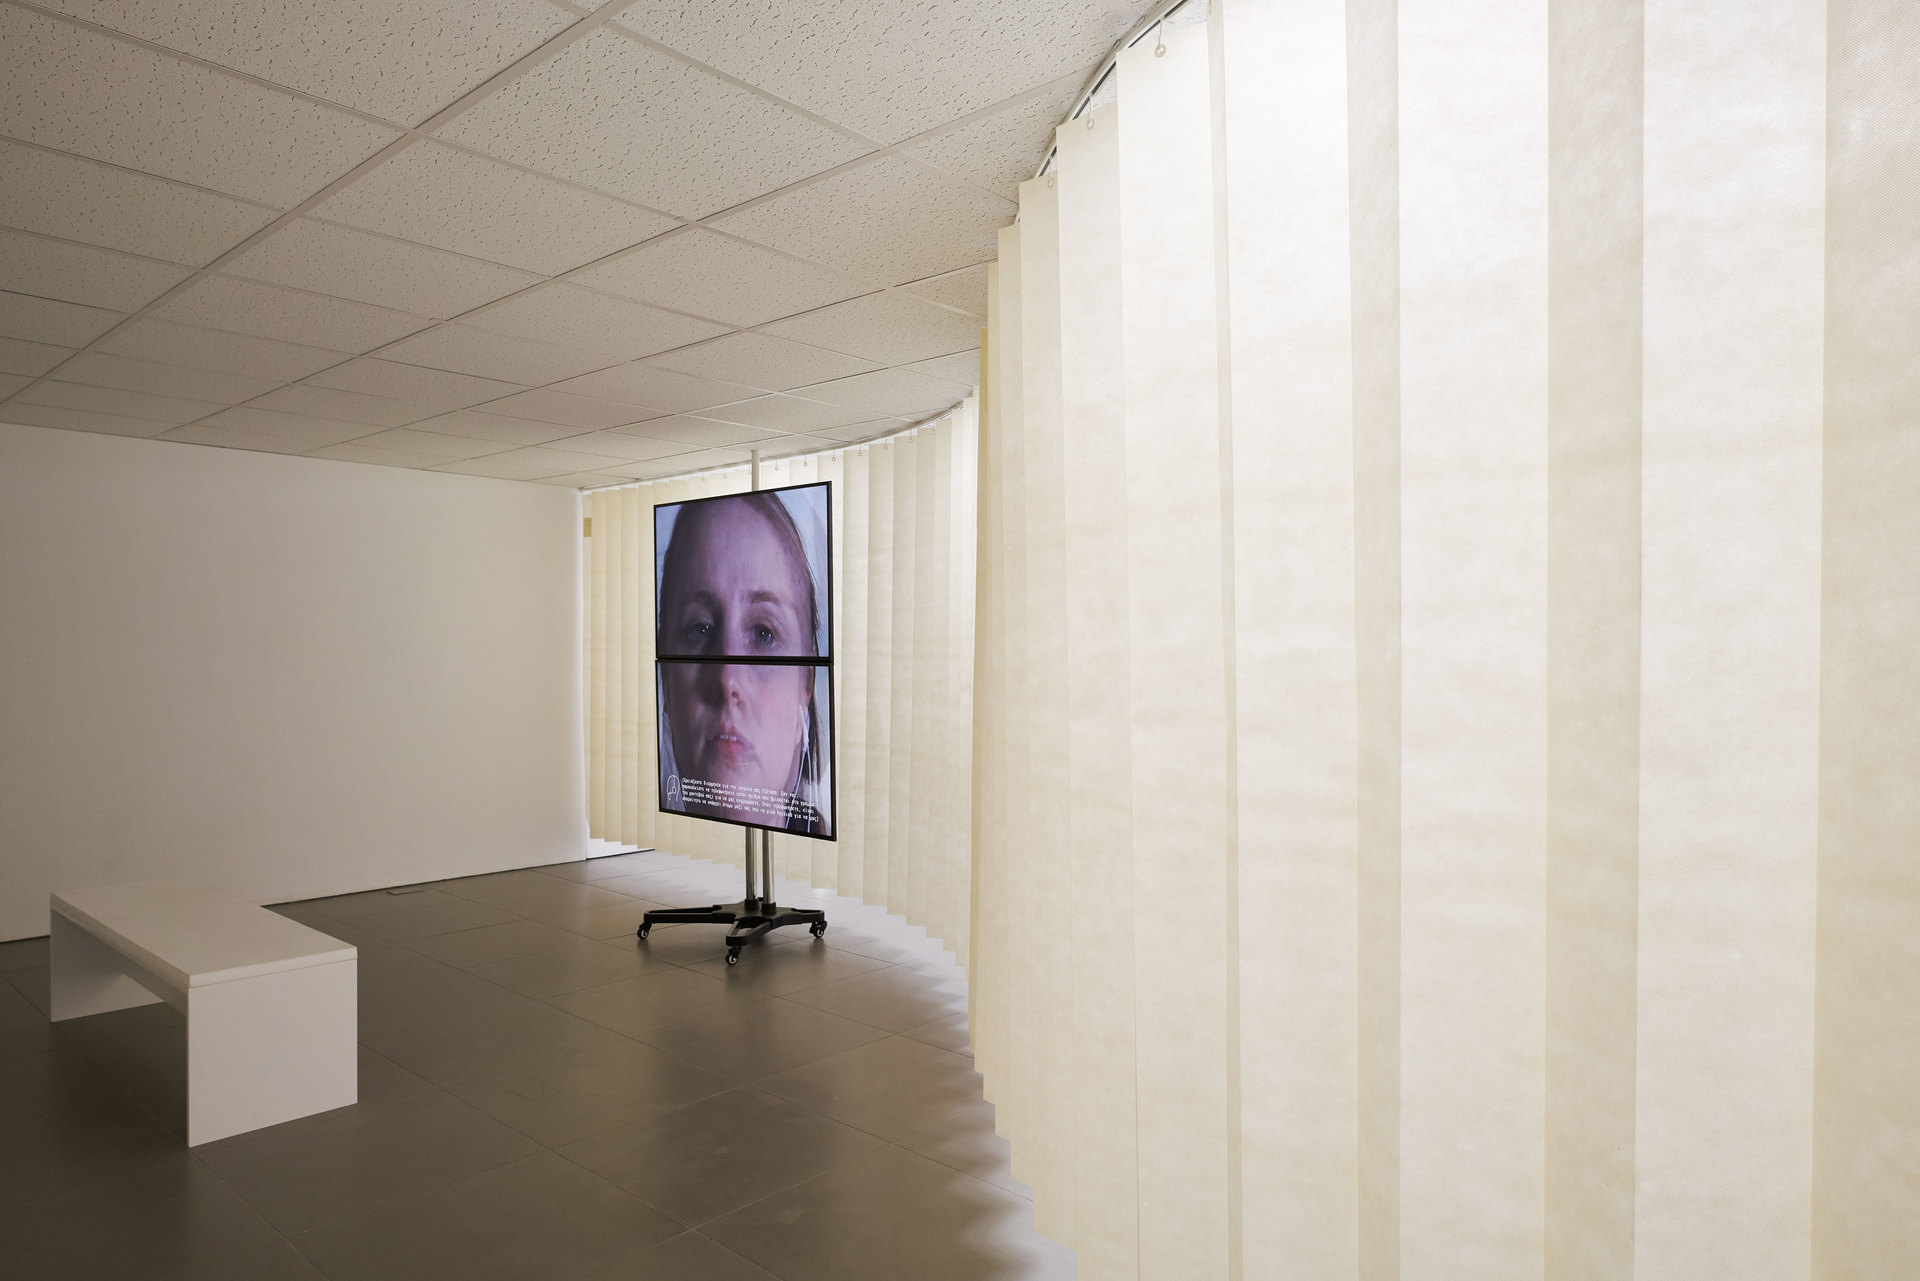 Josh Bitelli, A Partition, installation view, 2016, Cell Project Space